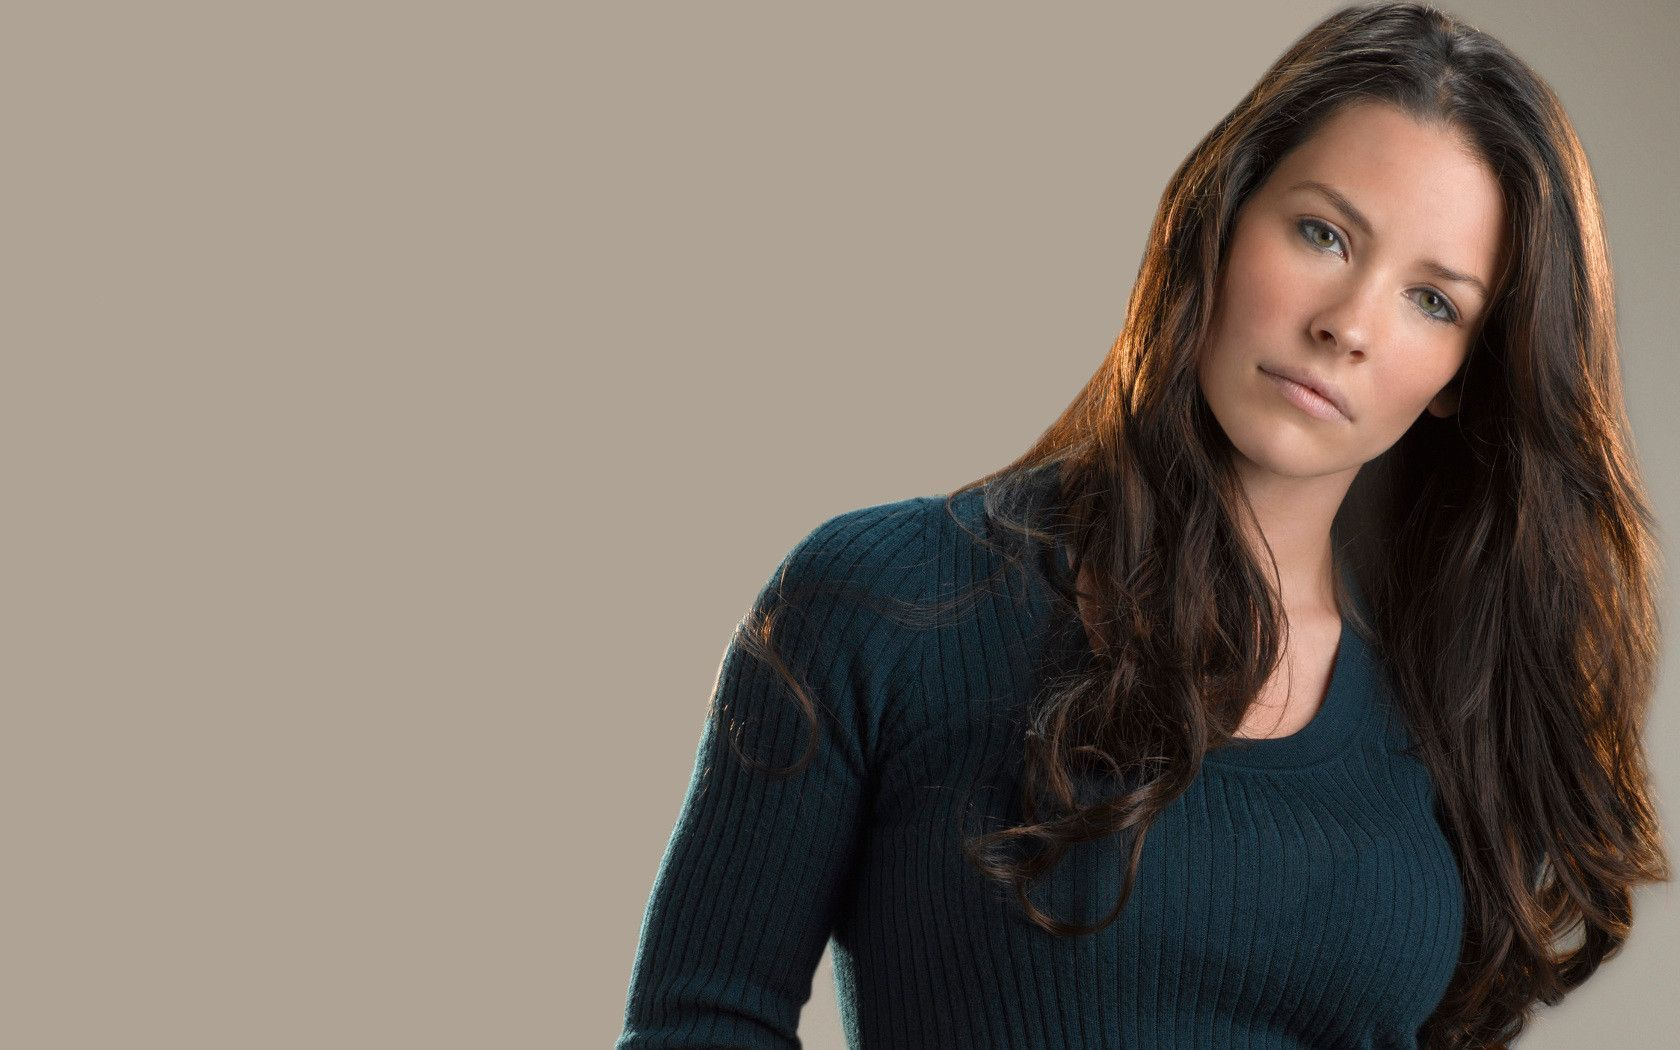 1680x1050 - Evangeline Lilly Wallpapers 5